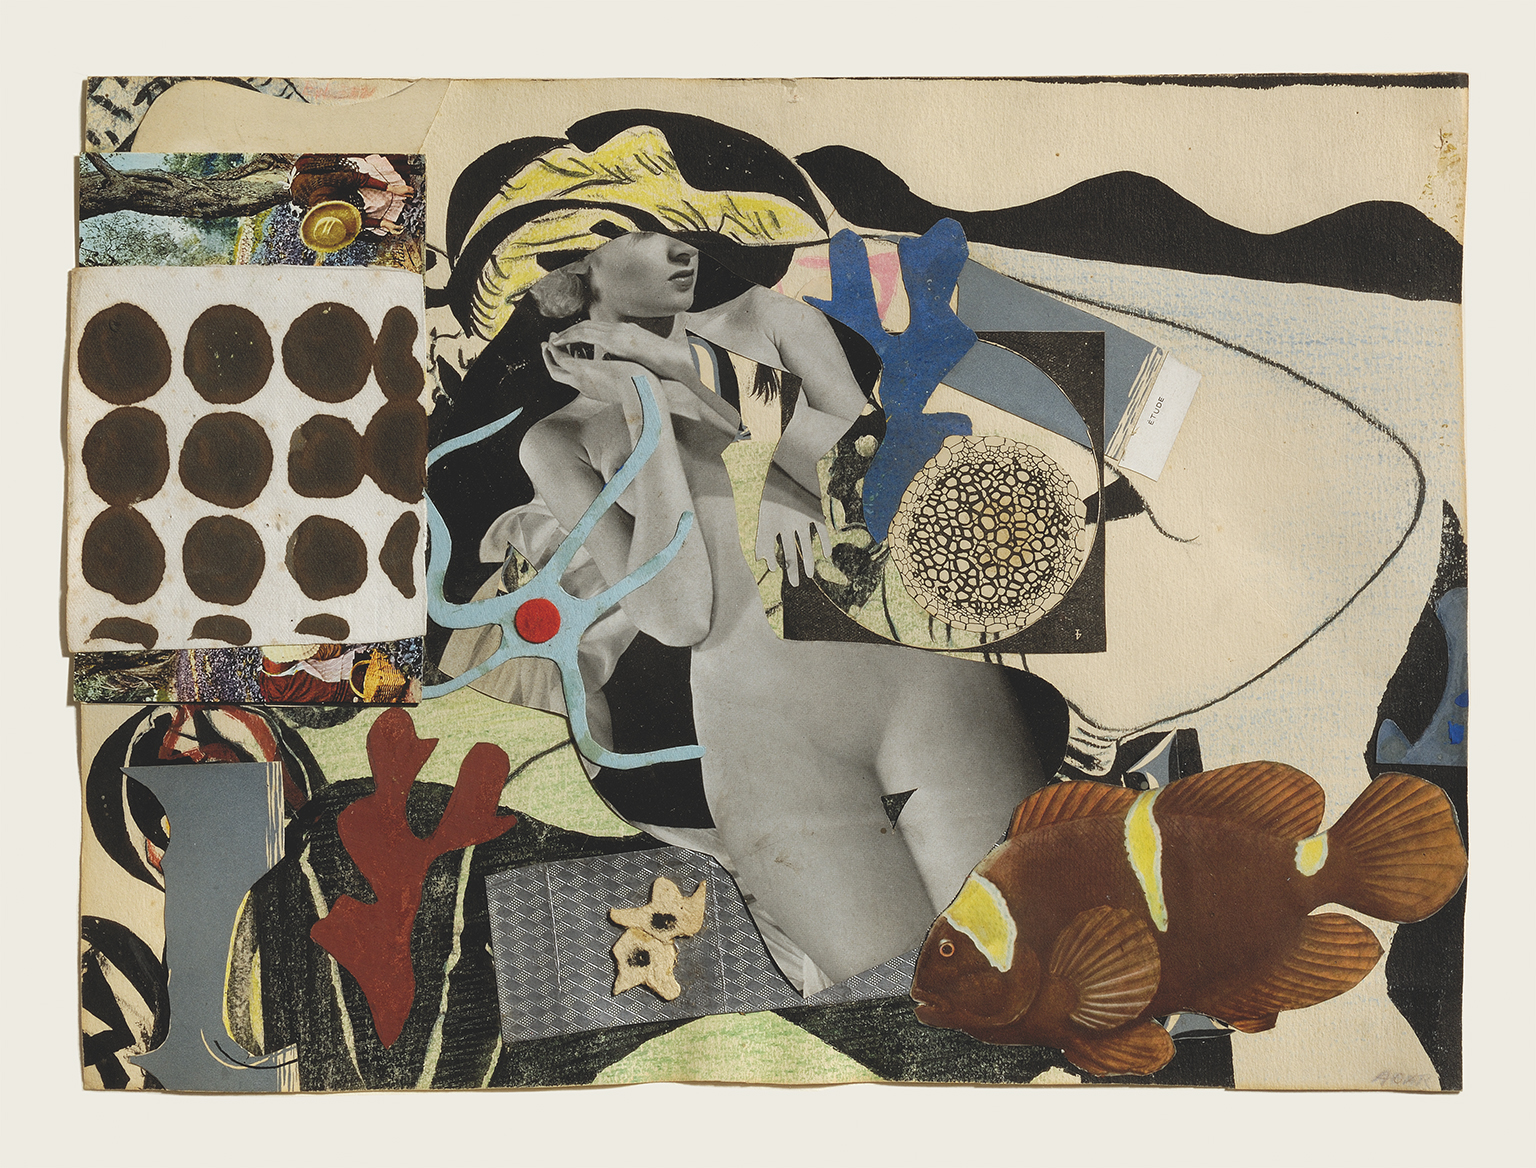 Eileen Agar, Erotic Landscape, 1942, Collage on paper, 255 x 305 mm. Private collection © Estate of Eileen Agar/Bridgeman Images. Photograph courtesy Pallant House Gallery, Chichester © Doug Atfield